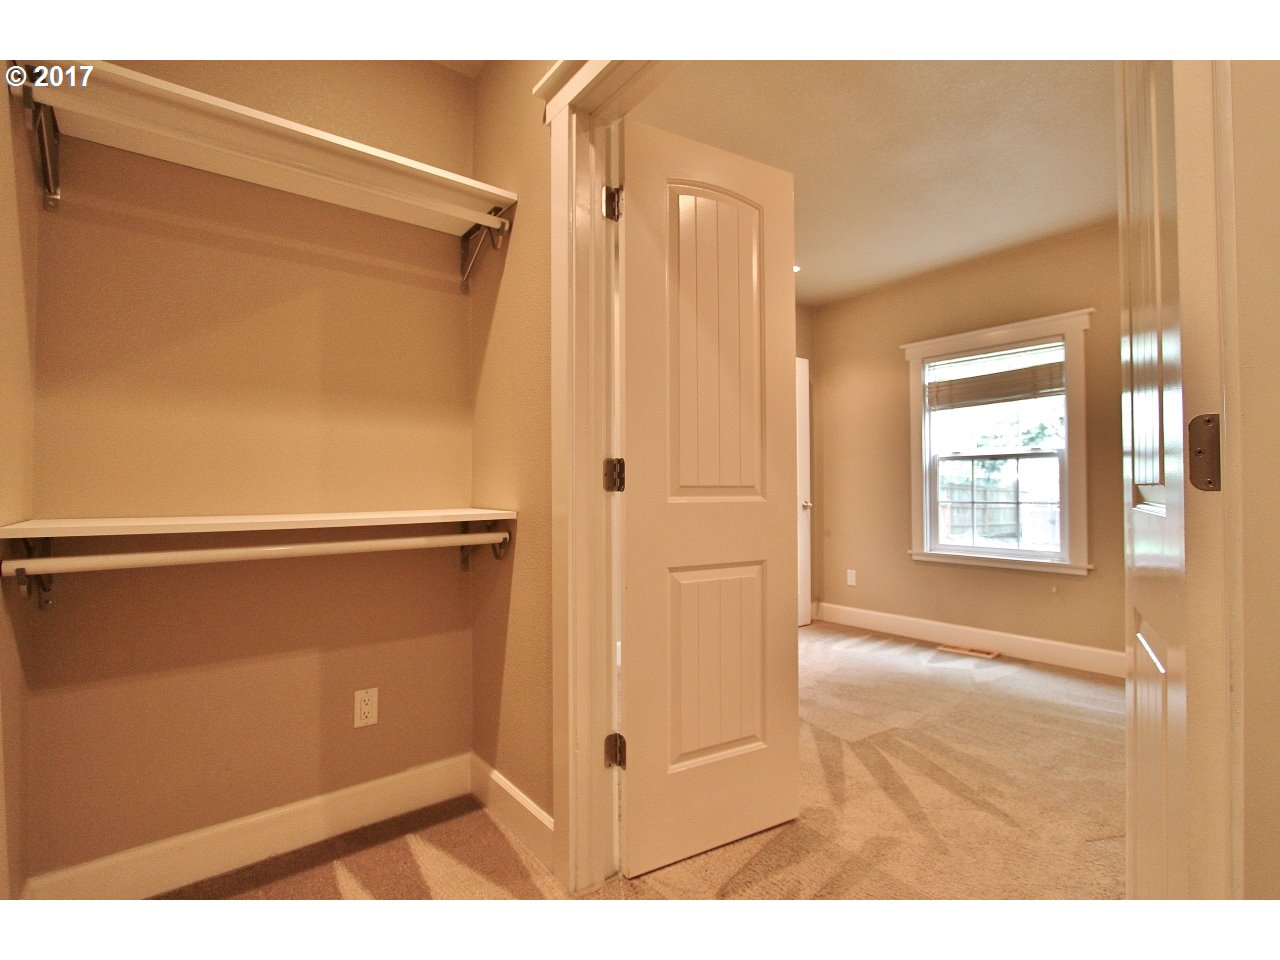 3475 SW 90TH AVE Portland, OR 97225 - MLS #: 17021125